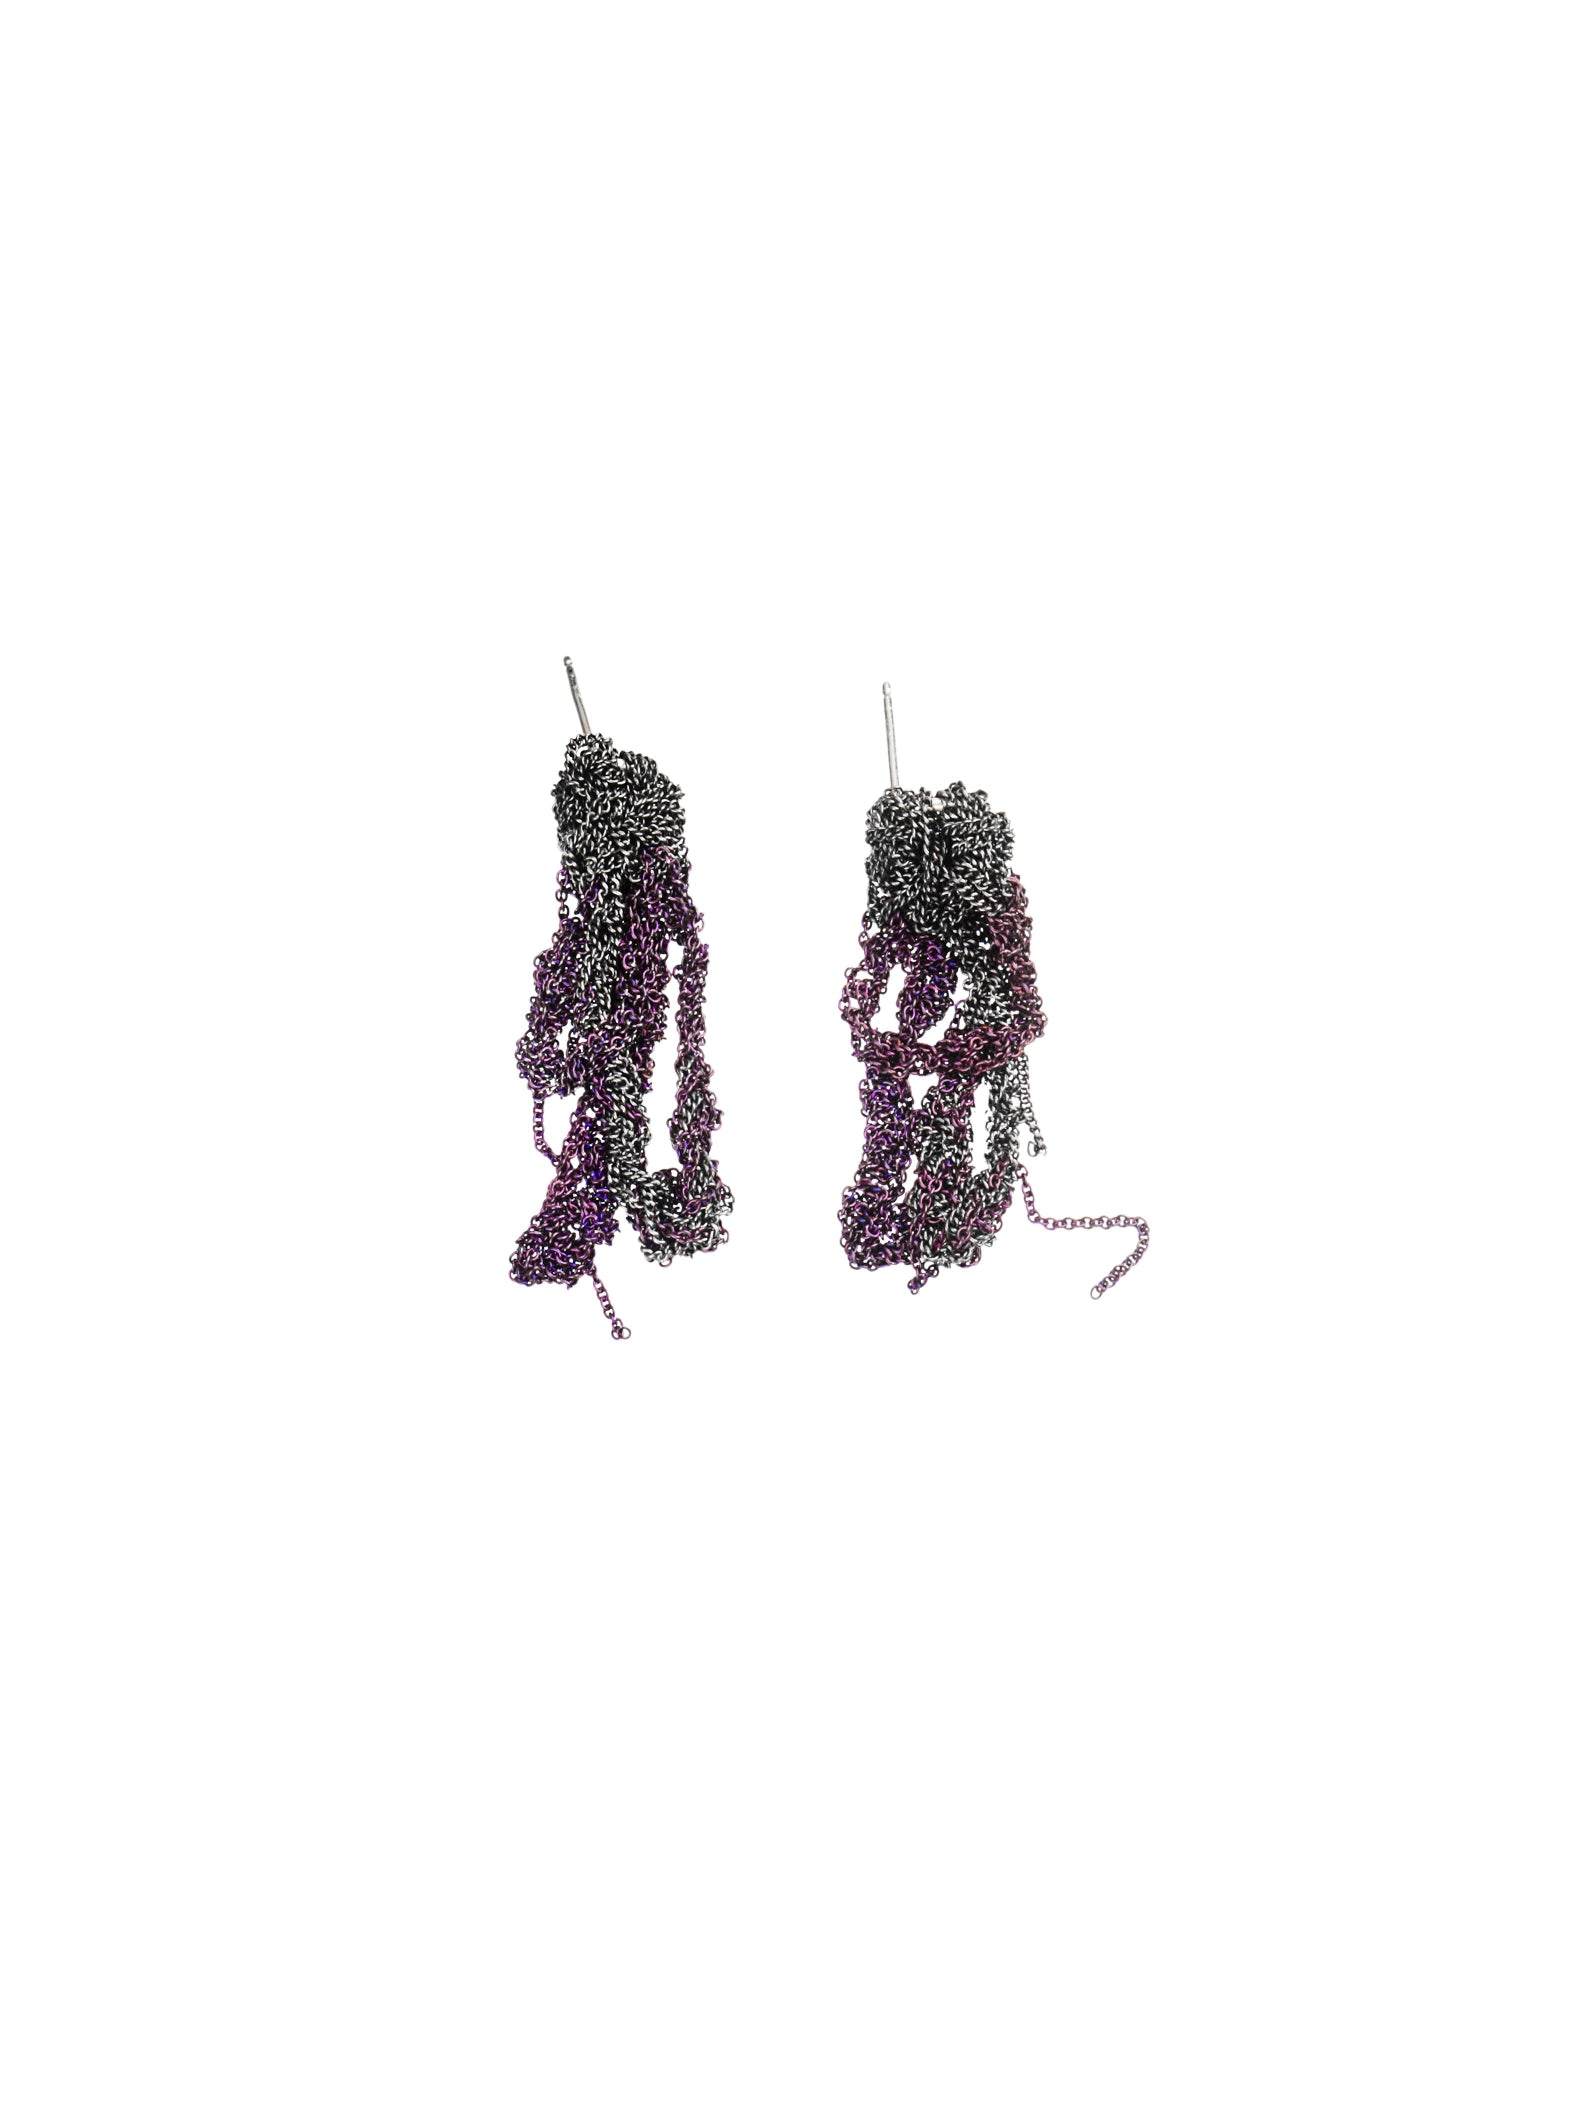 2-Tone Drip Earrings in Charcoal + Plum